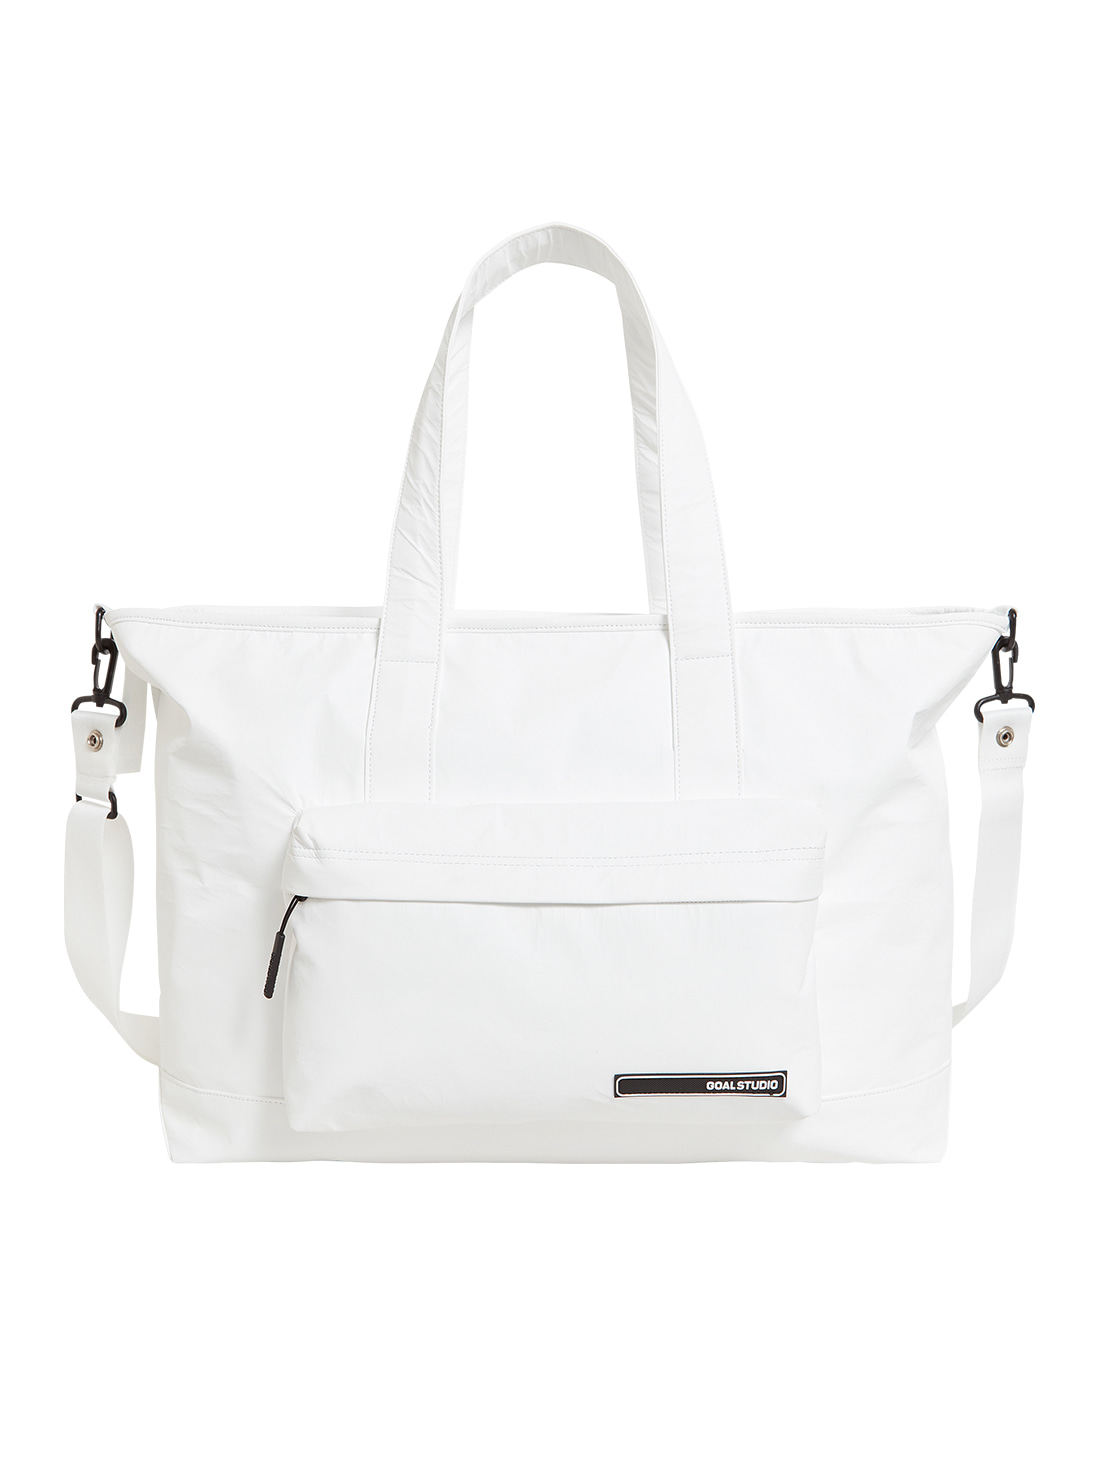 LOGO WAPPEN TOTE BAG - WHITE